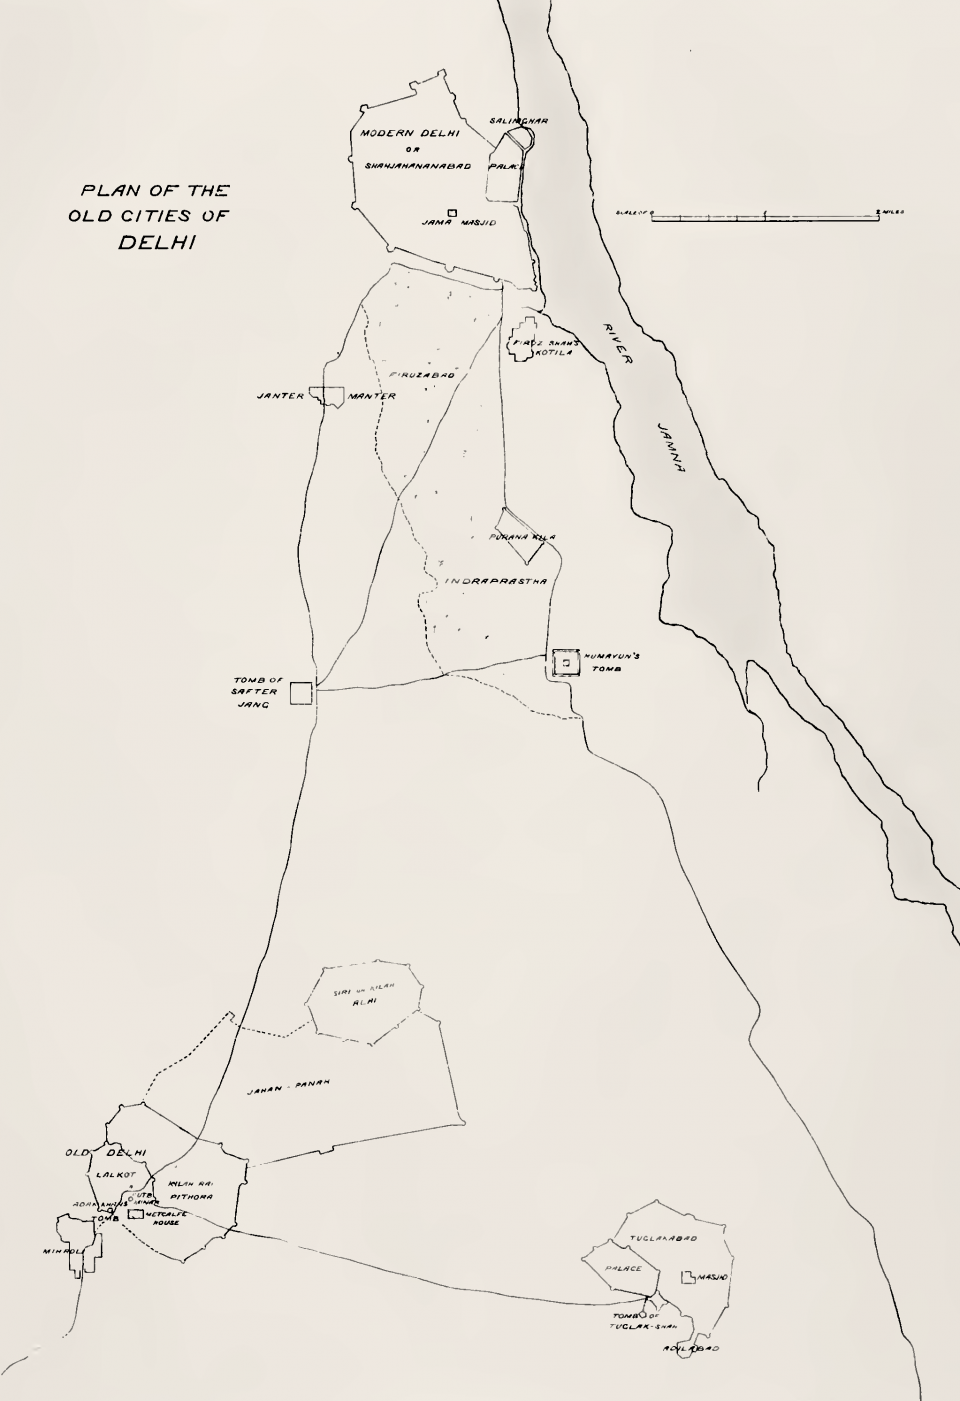 Plan No. 1: Plan of the old cities of Delhi